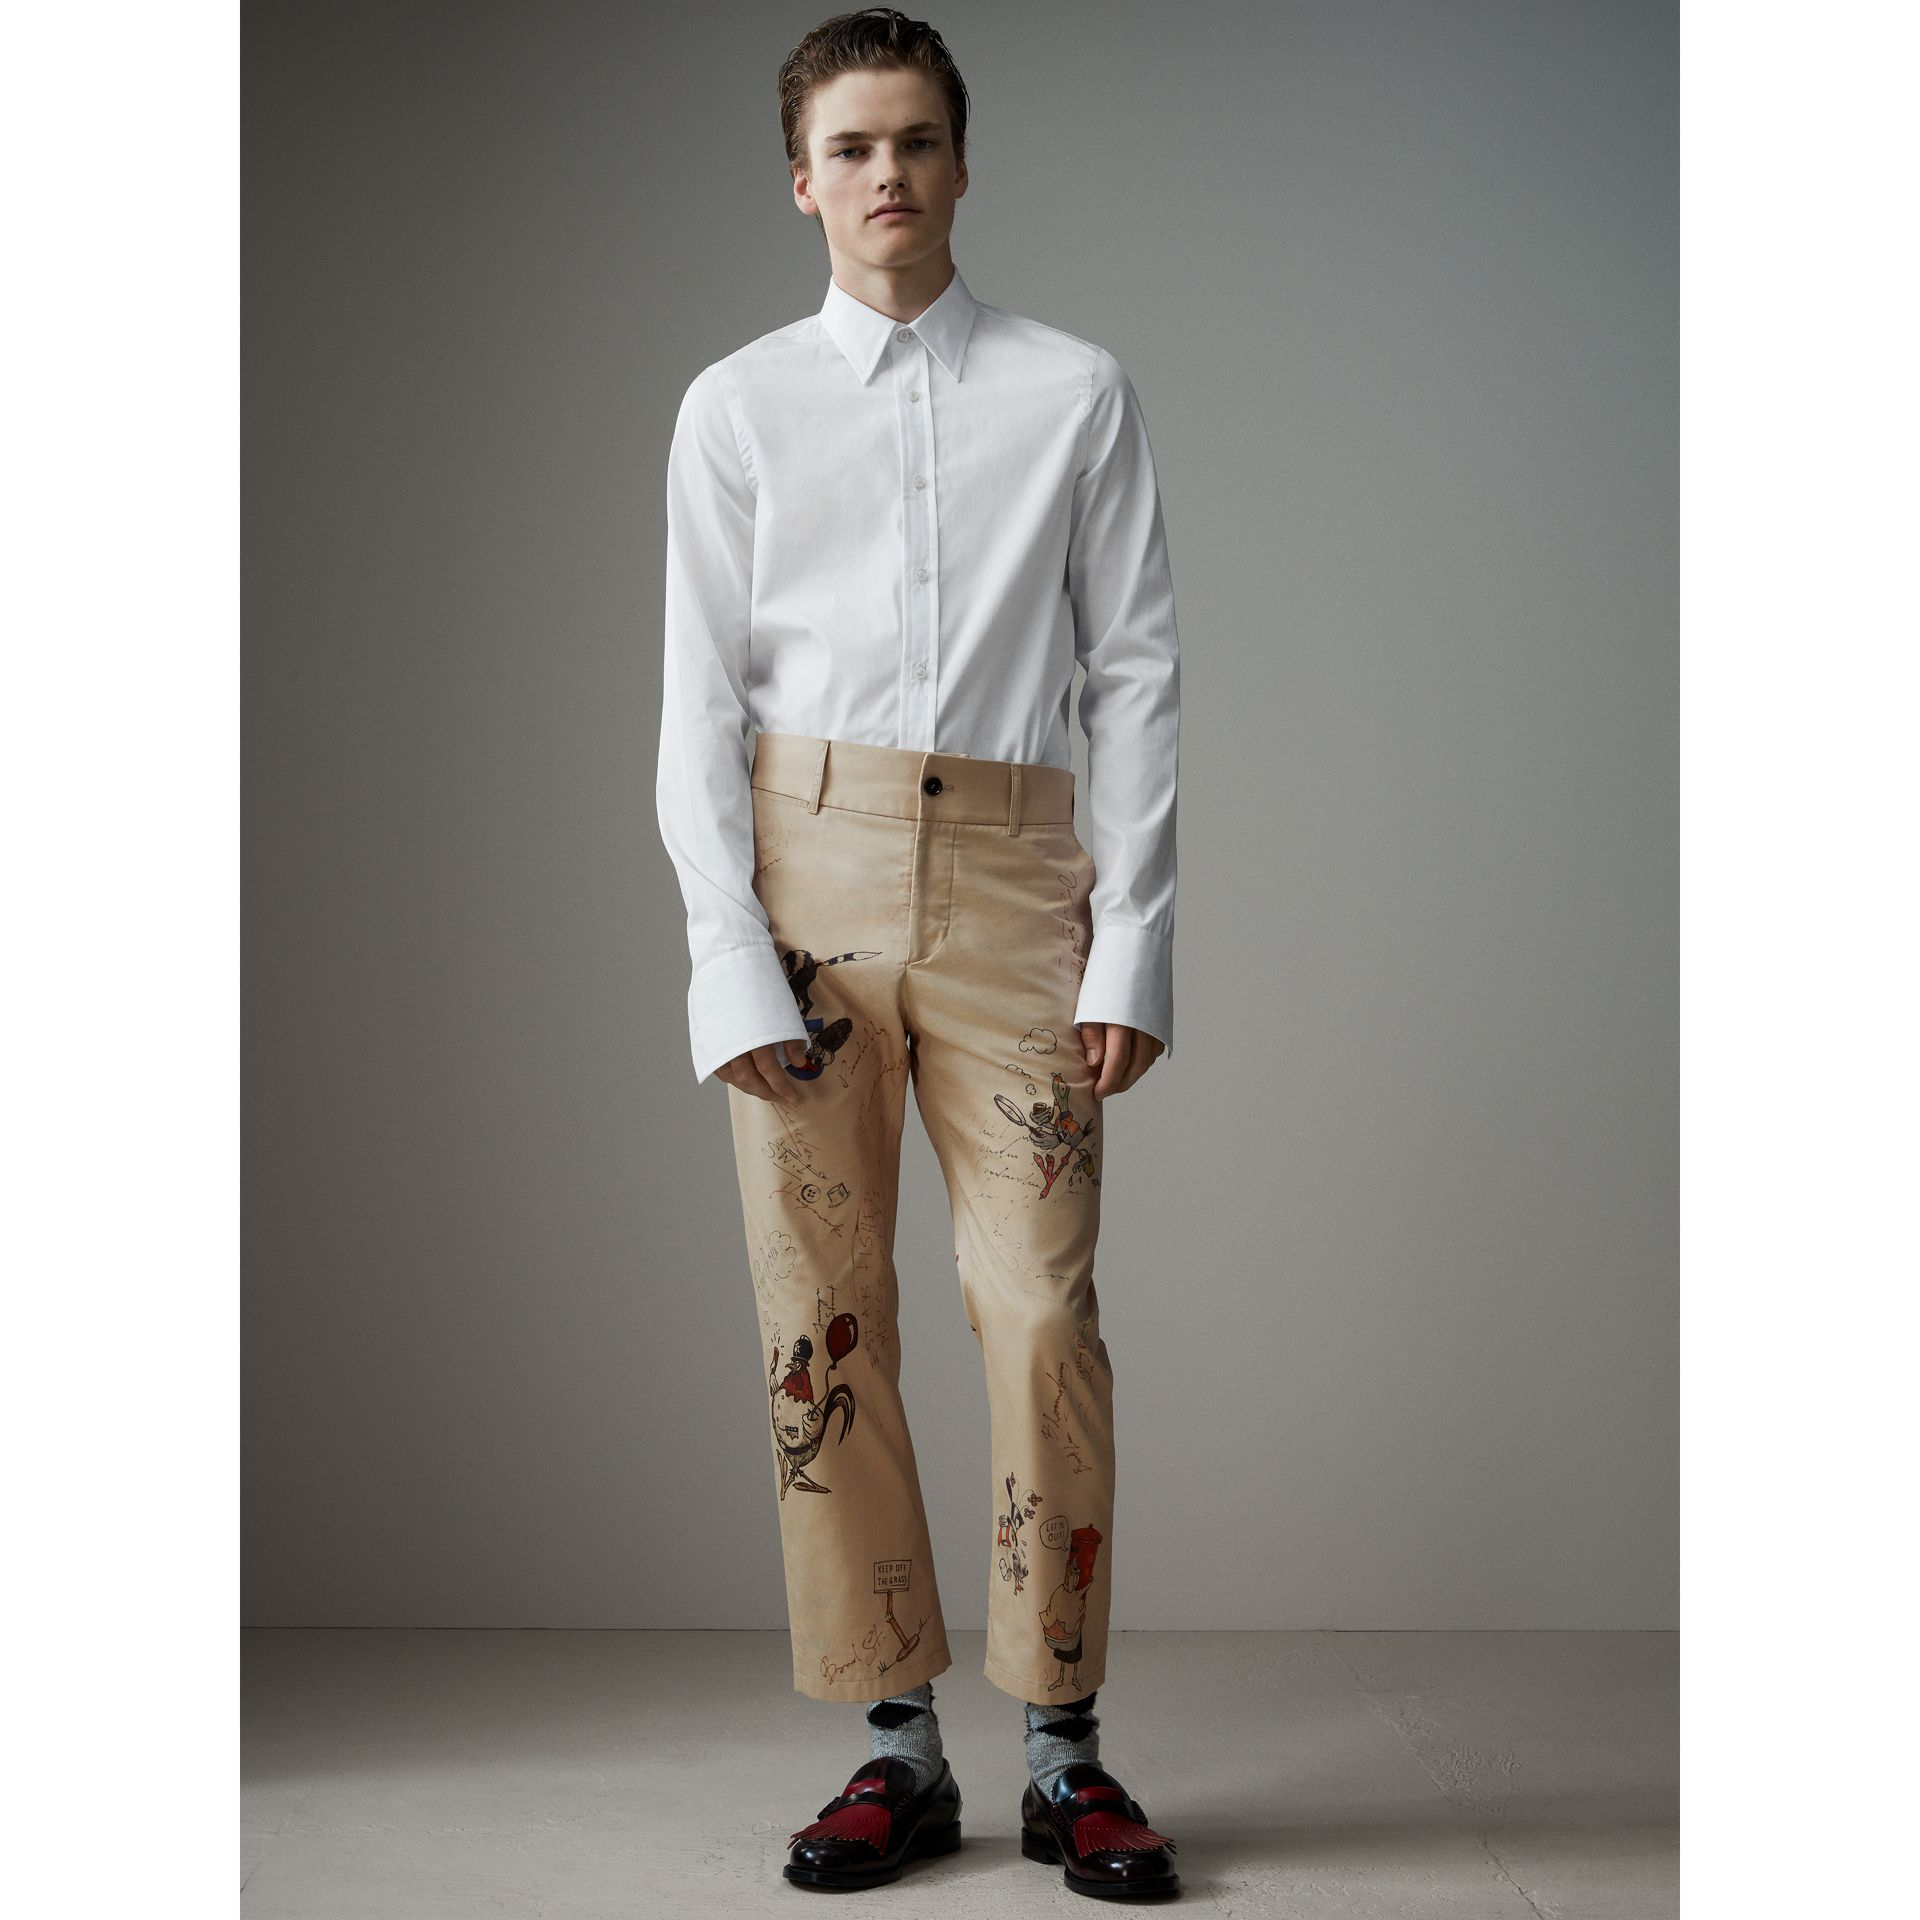 Pantalon chino 7/8 en coton à motif humoristique (Sable) - Homme | Burberry - photo de la galerie 1